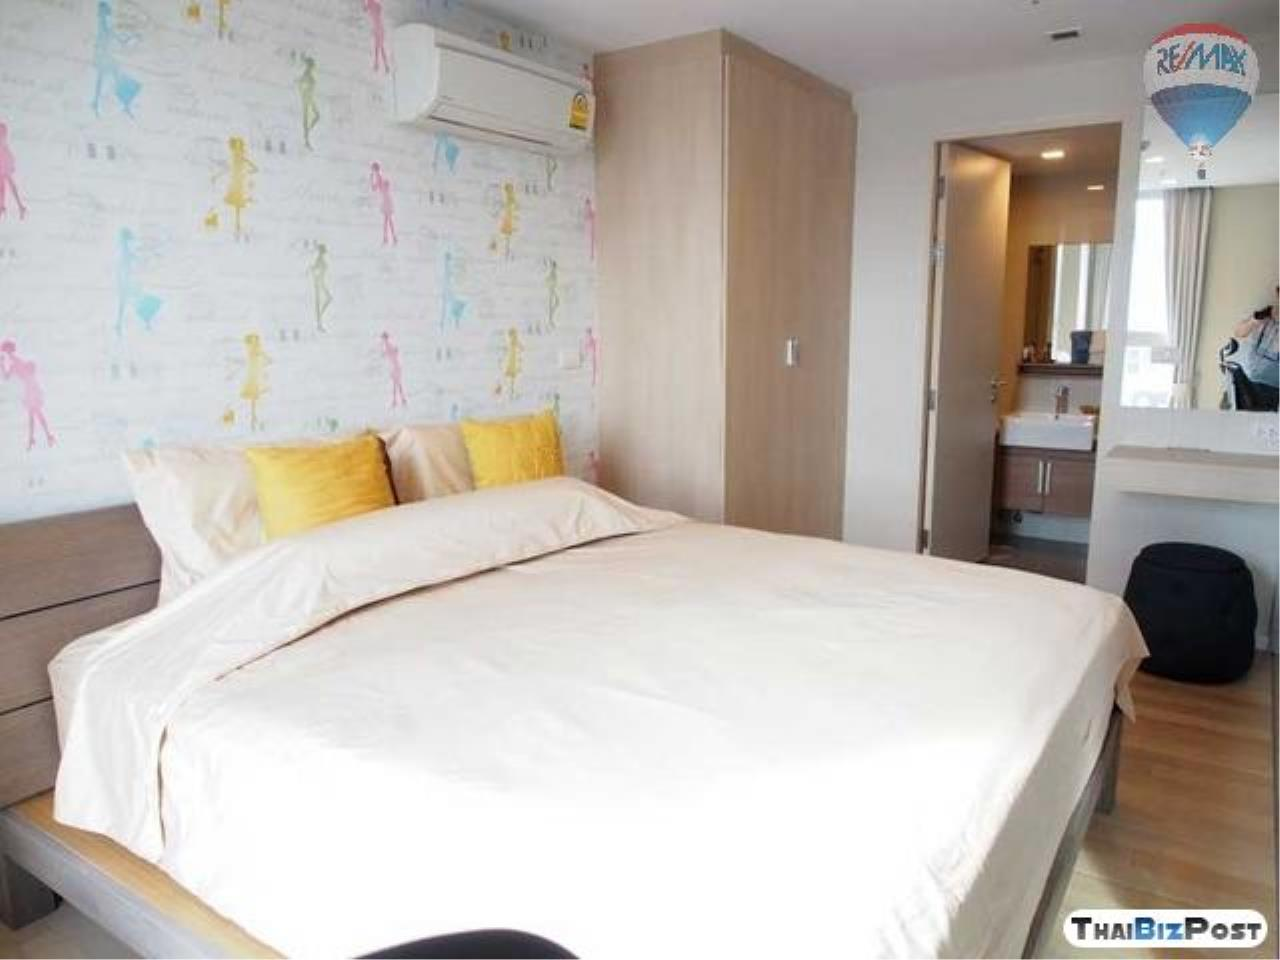 RE/MAX BestLife Agency's condo for rent HAUSE 23 ladprao 23 1